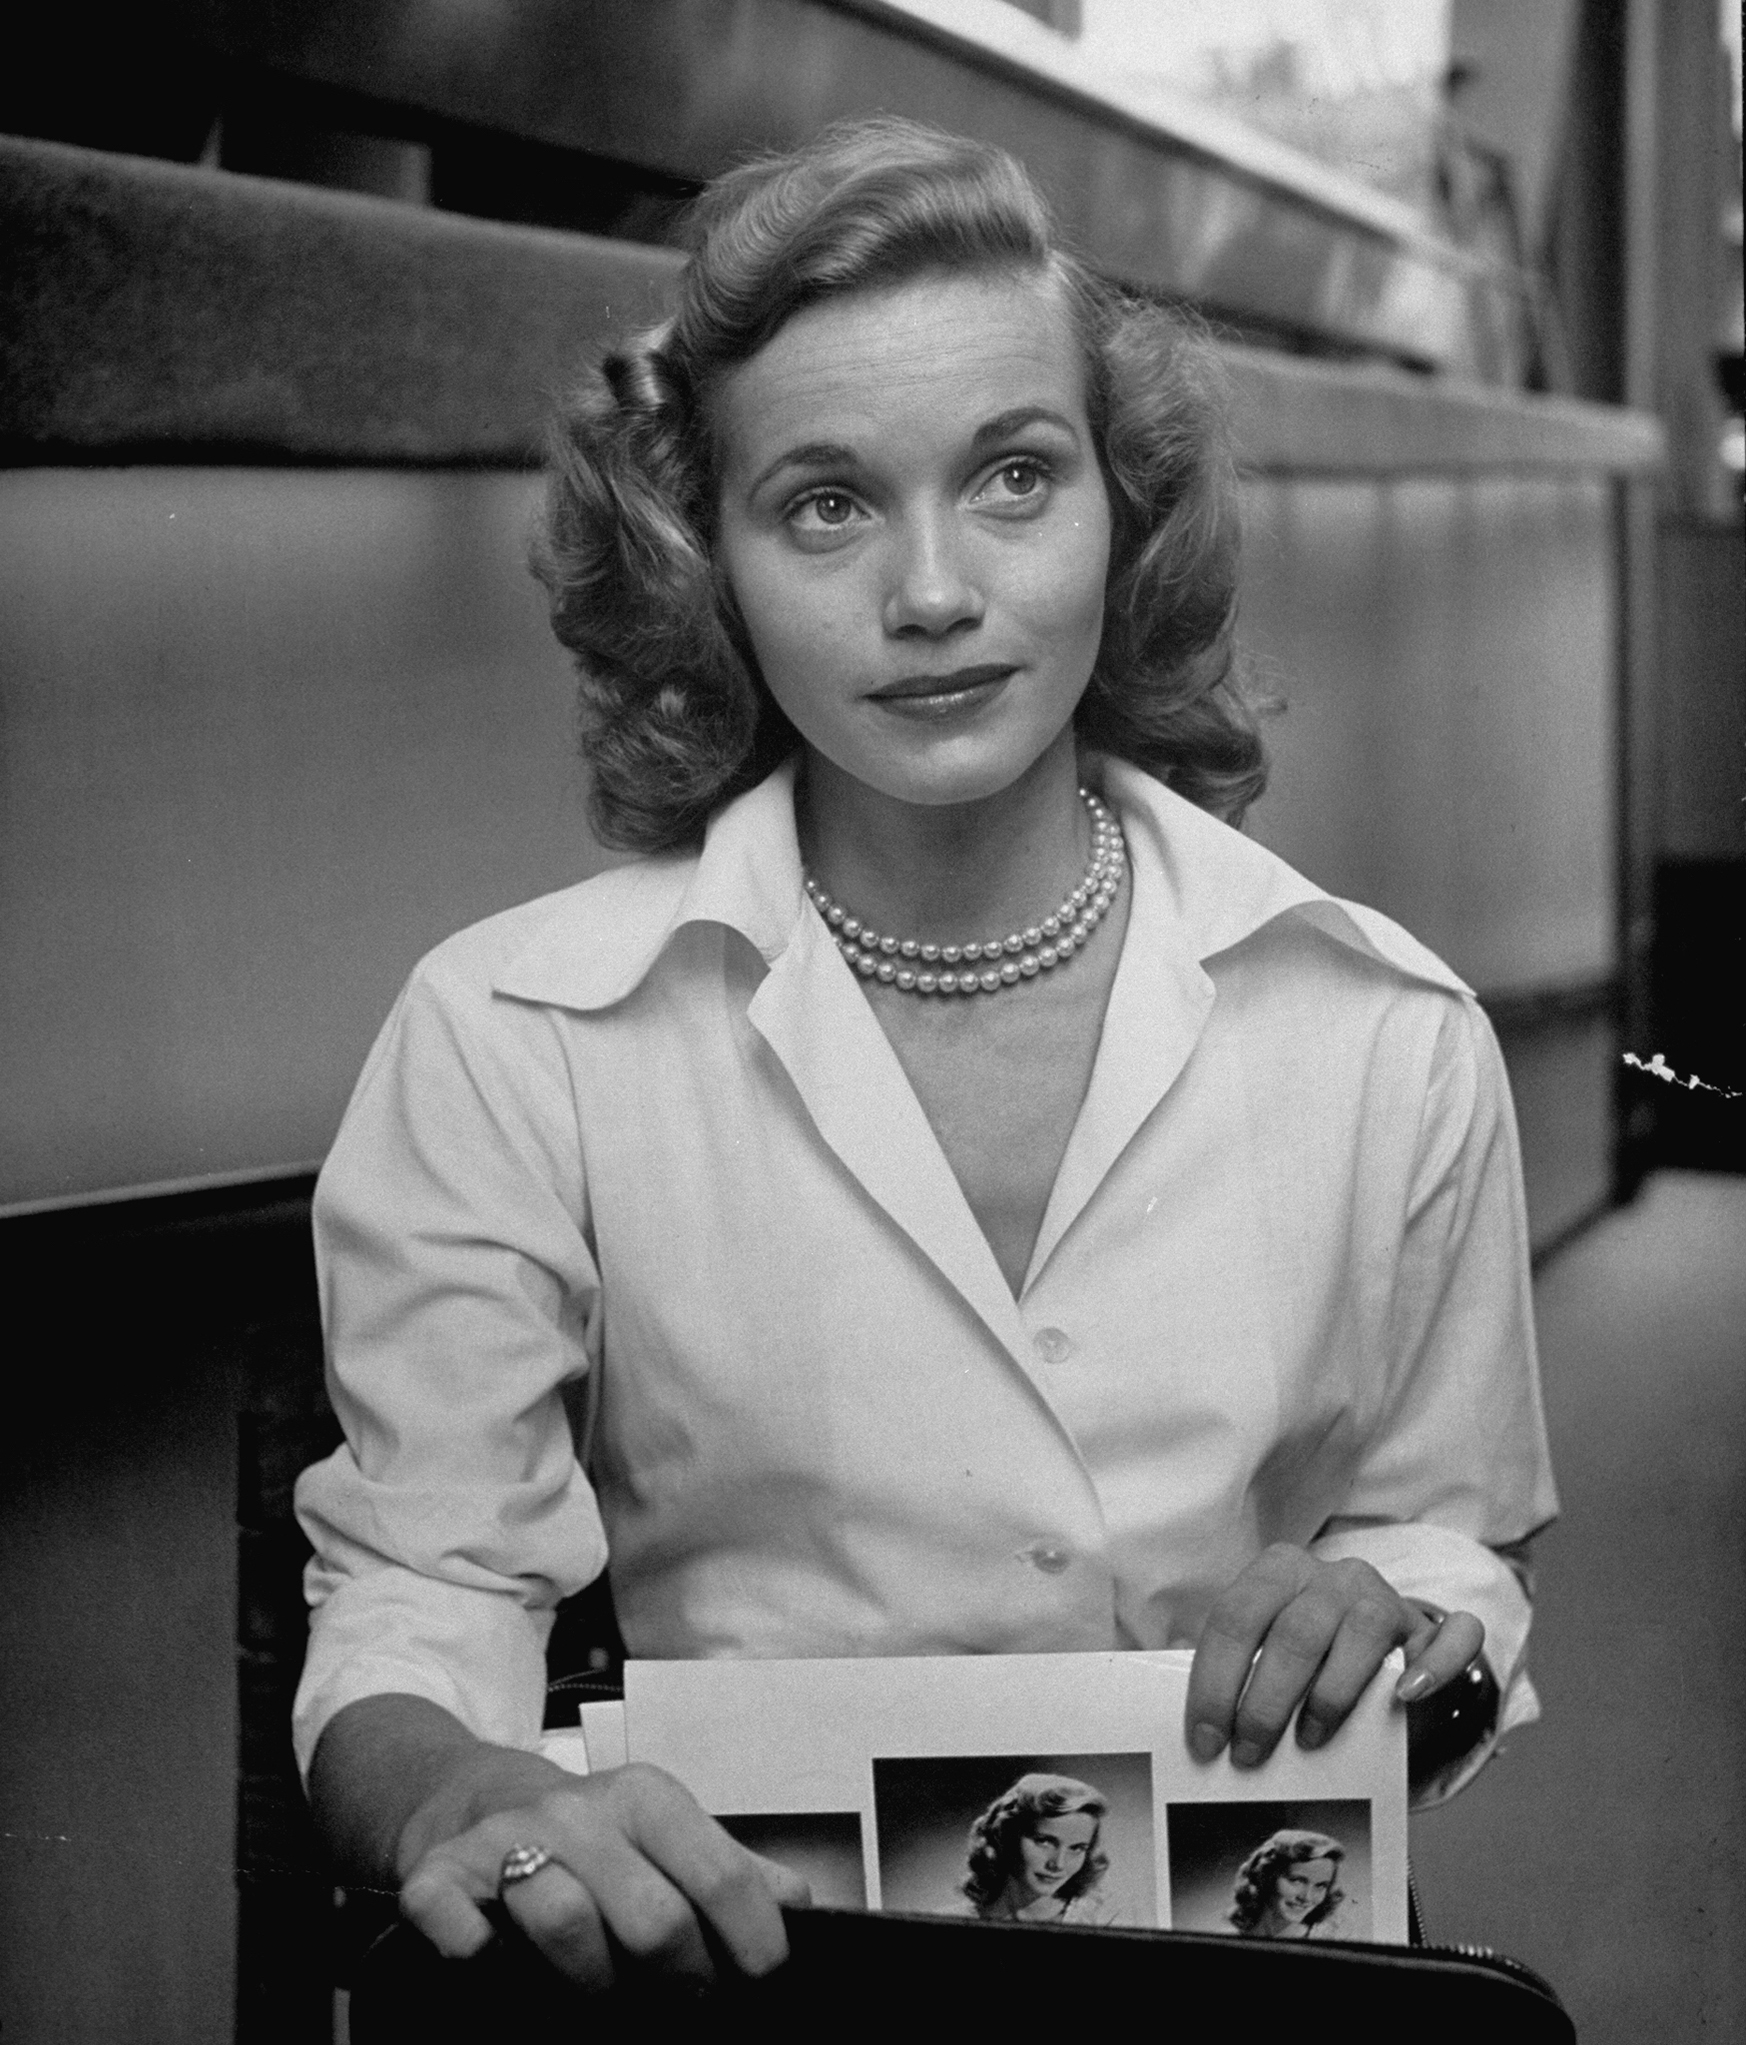 Actress Eva Maria Saint, taking her portraits and calling cards from her briefcase.